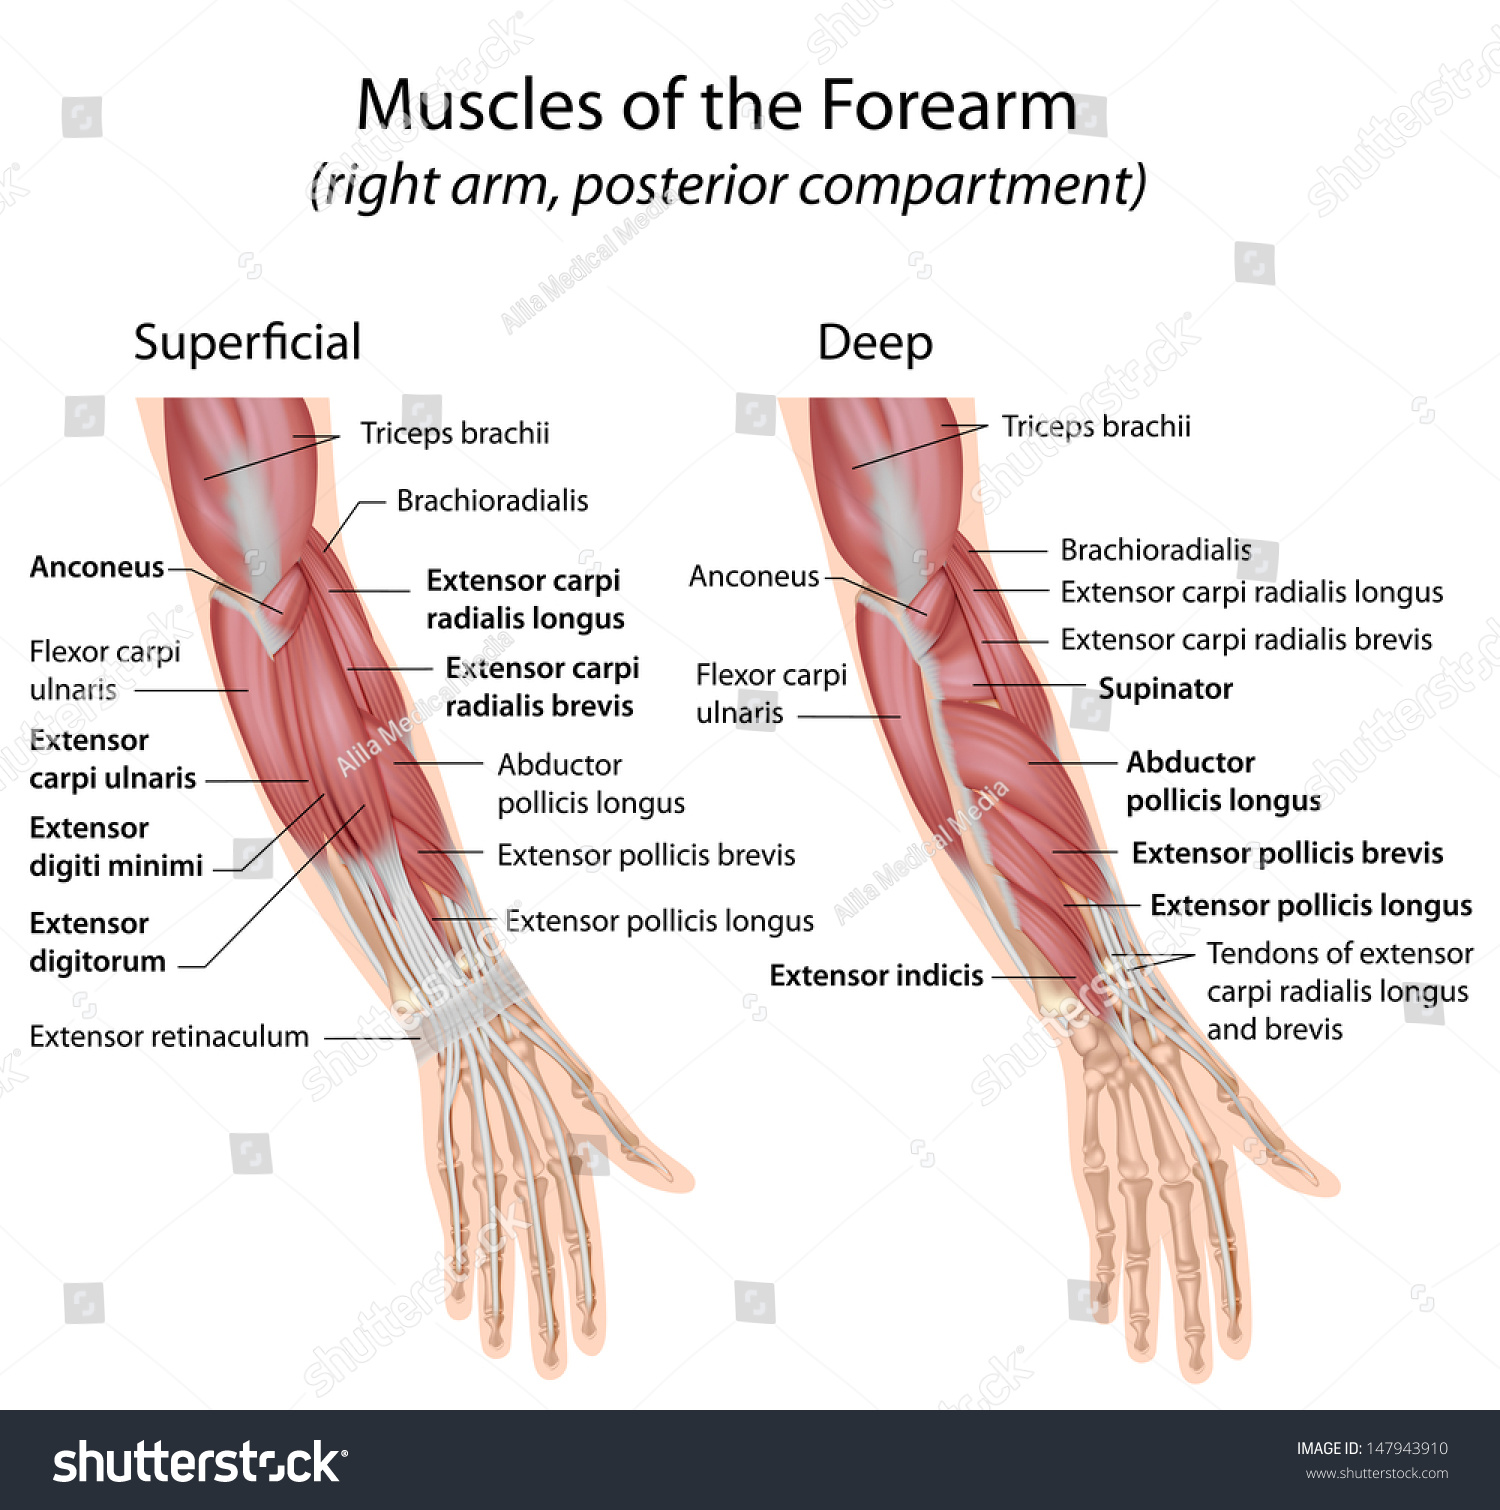 Forearm Muscles Dorsal Compartment Labeled Stock Illustration